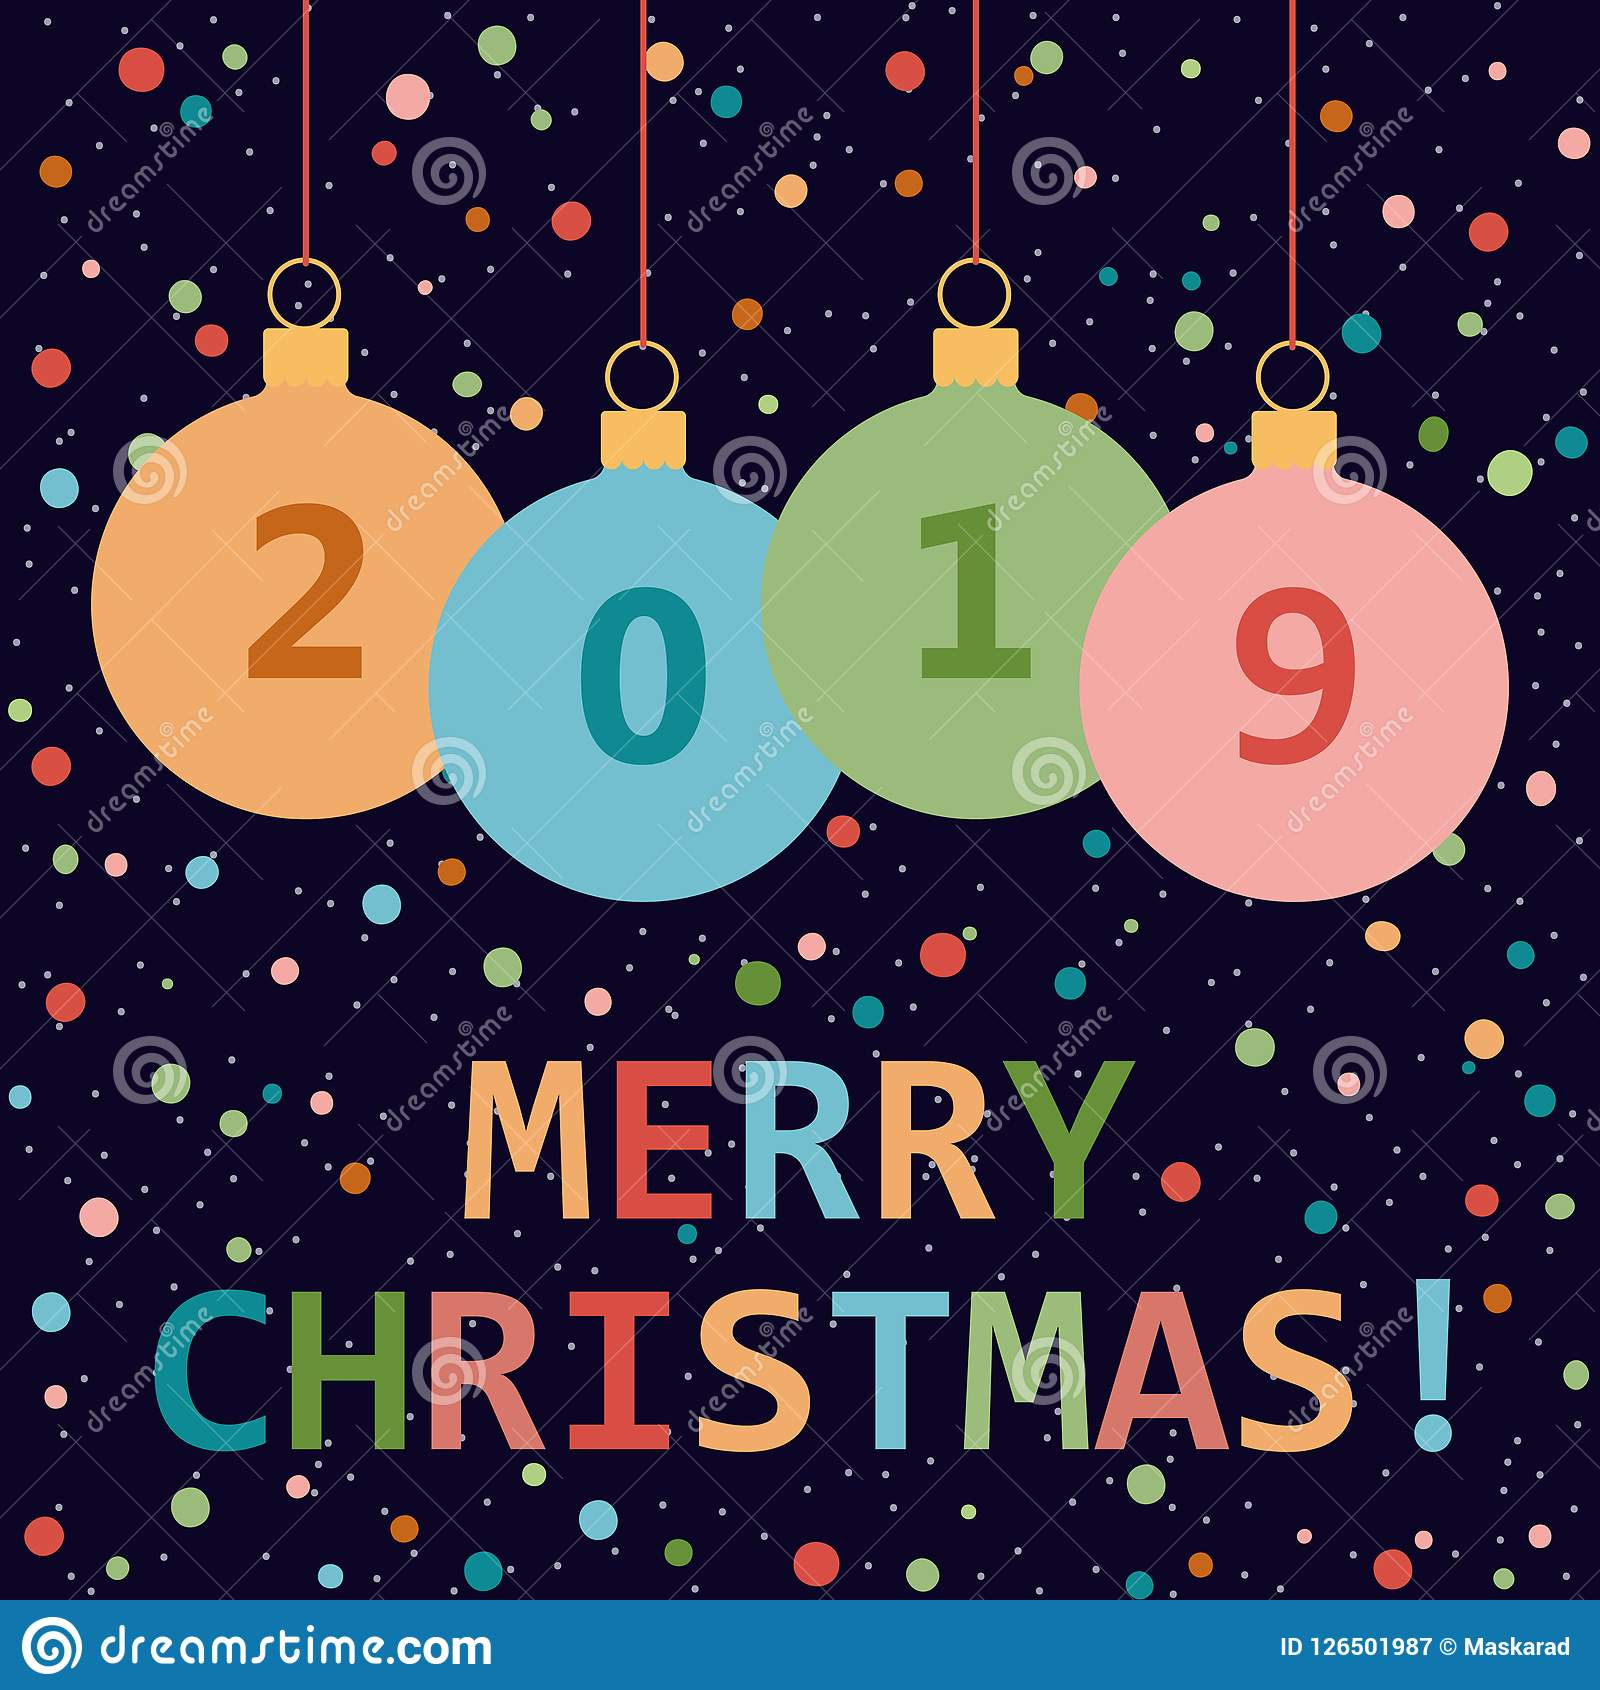 Merry Christmas Greeting Card By 2019 The New Year Stock